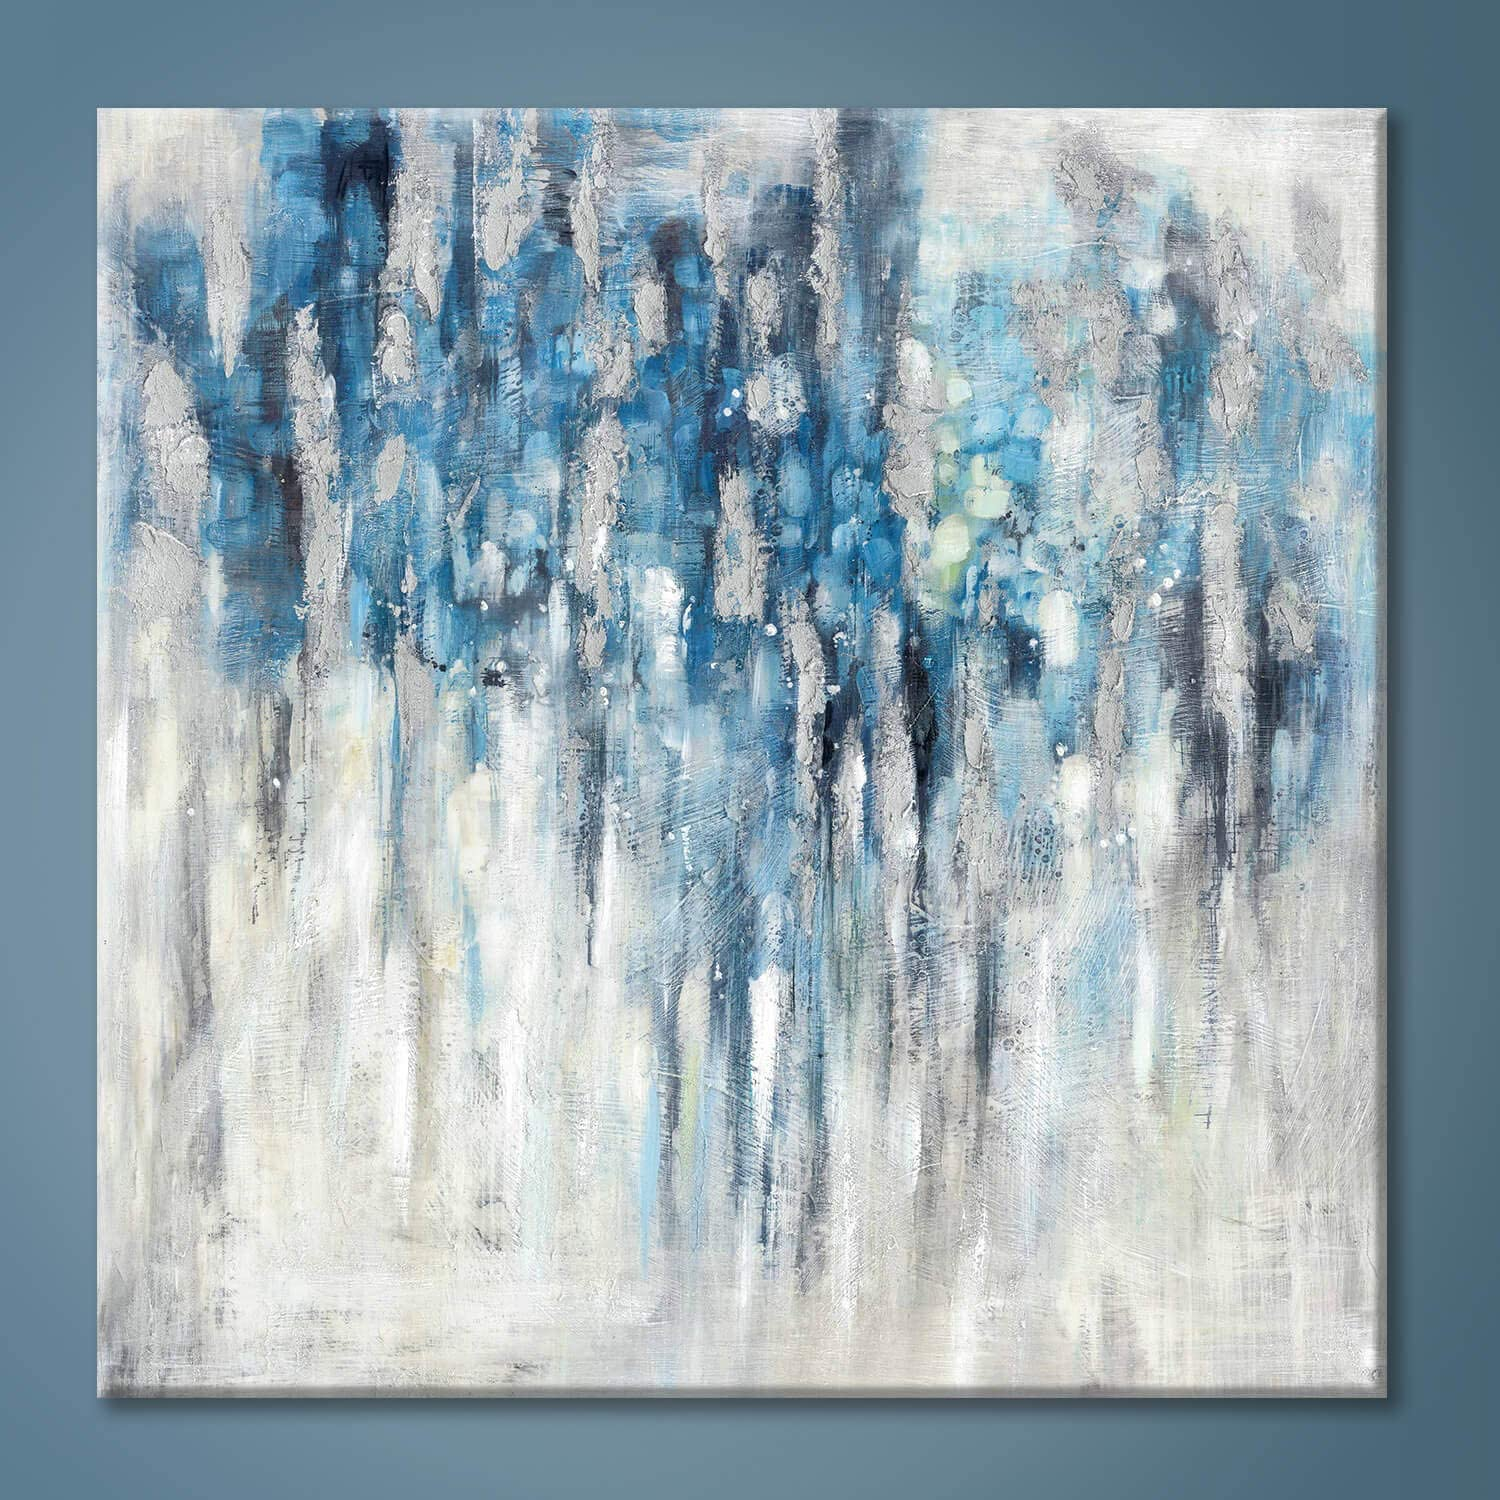 UTOP art Modern Abstract Wall Art CanvasBlue and Gray Artwork Aque  Painting for Living Room